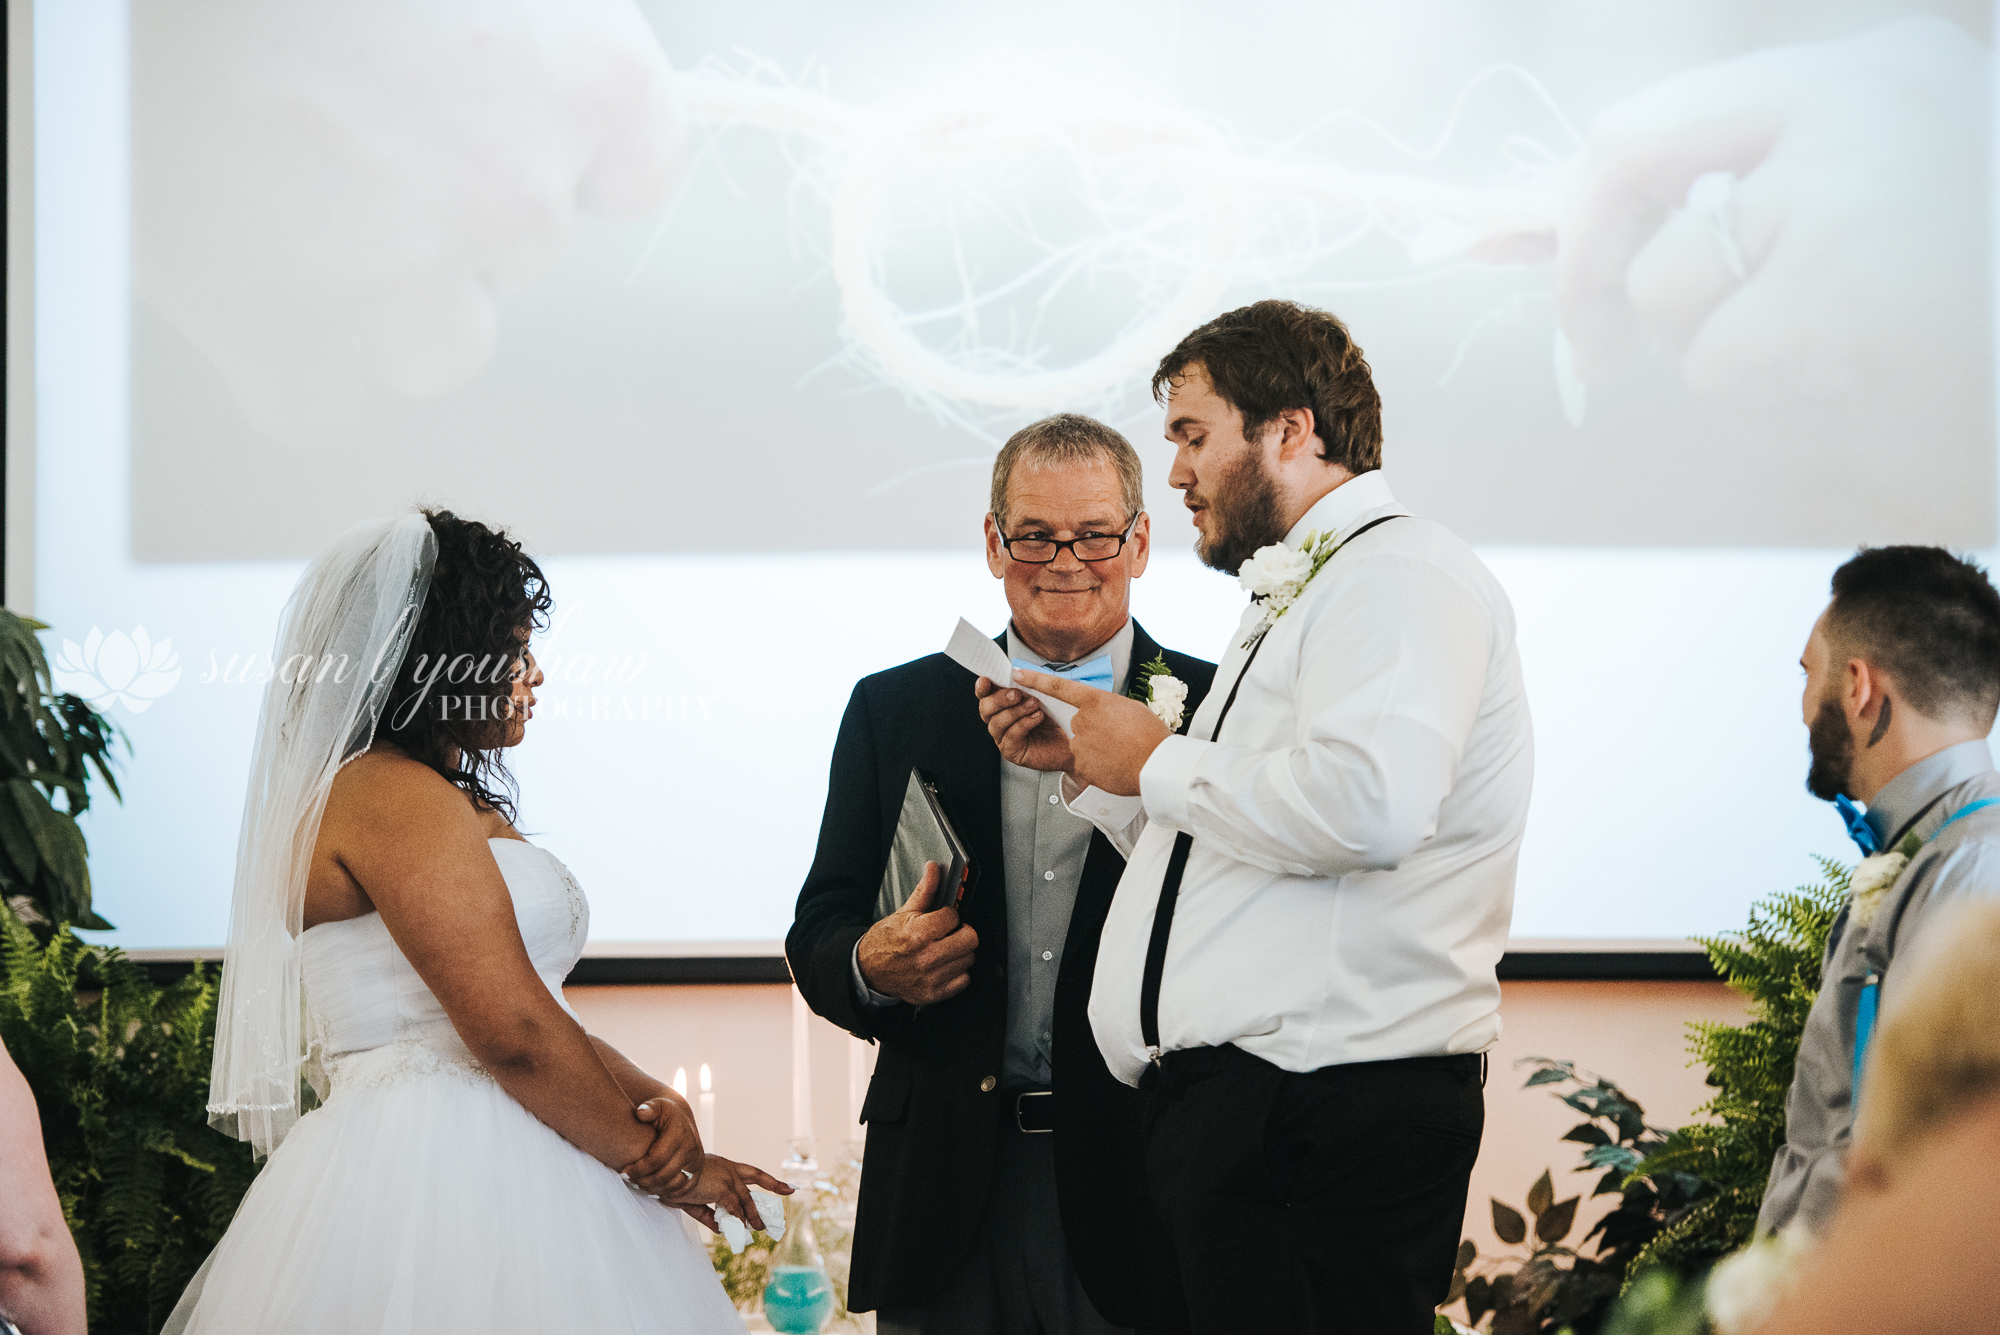 Katelyn and Wes Wedding Photos 07-13-2019 SLY Photography-68.jpg